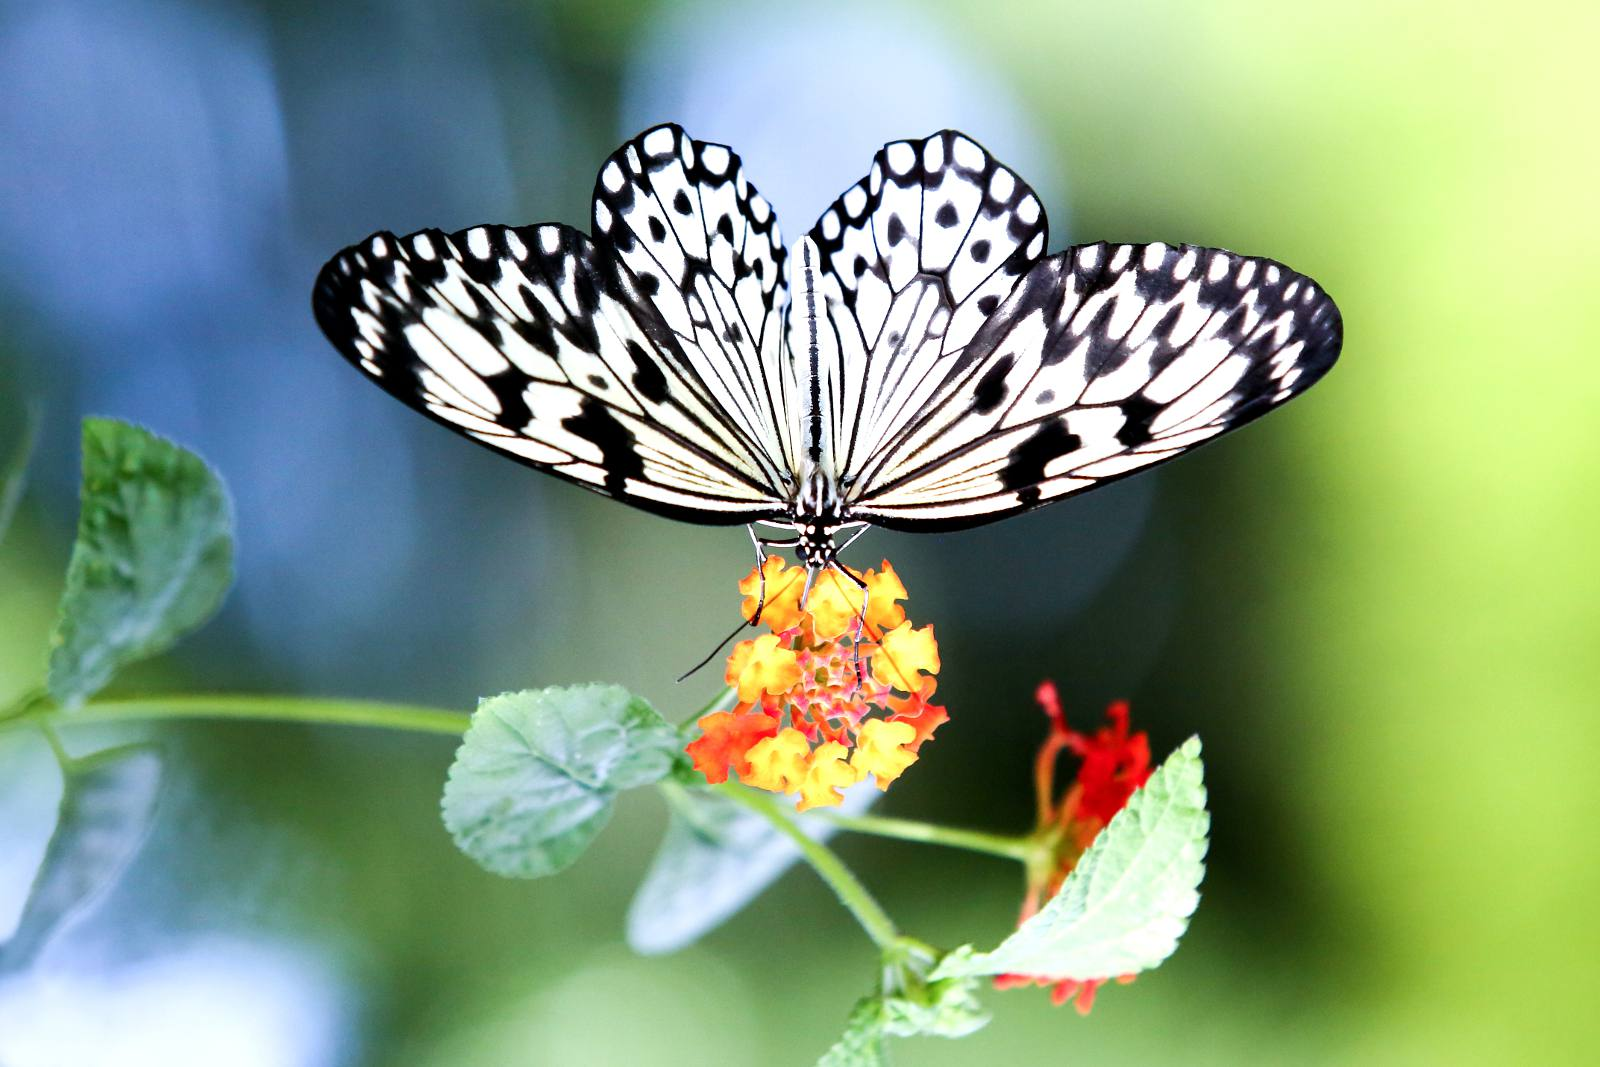 Montreal festivals in March 2017 include the Botanical Garden's Butterflies Go Free.